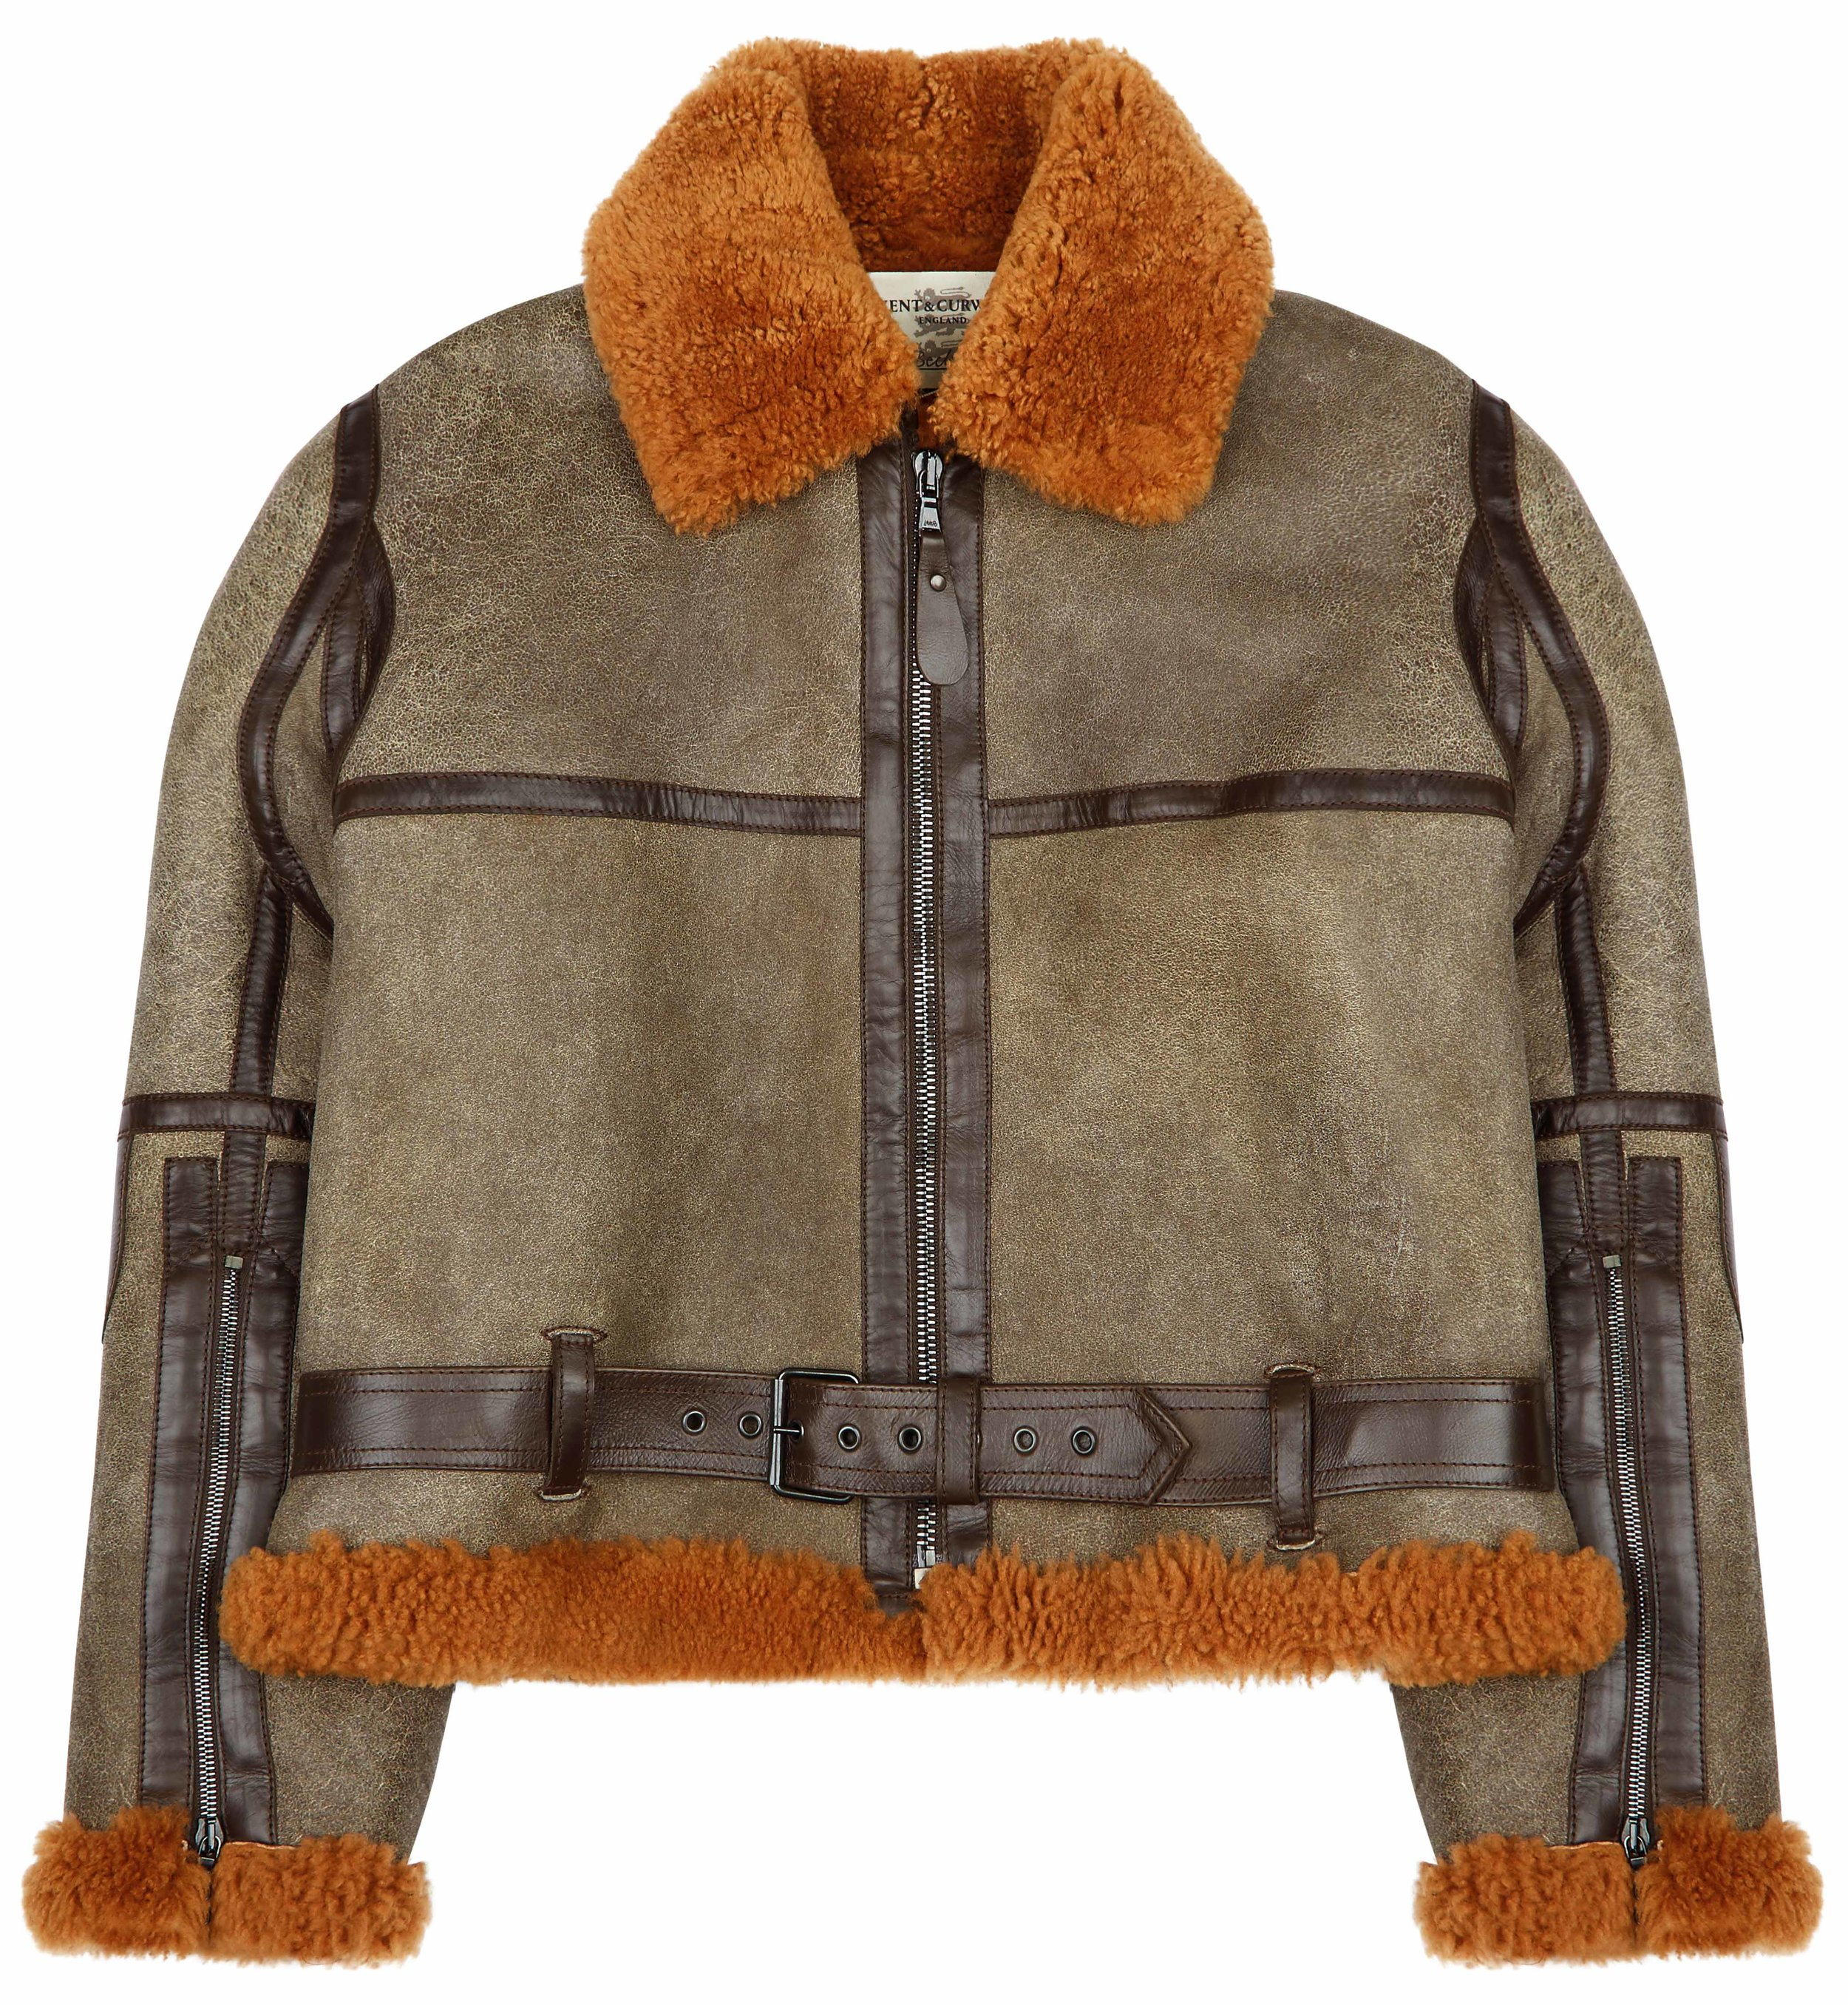 Kent & Curwen shearling aviator jacket - £1,895 - Giving whole new meaning to the phrase